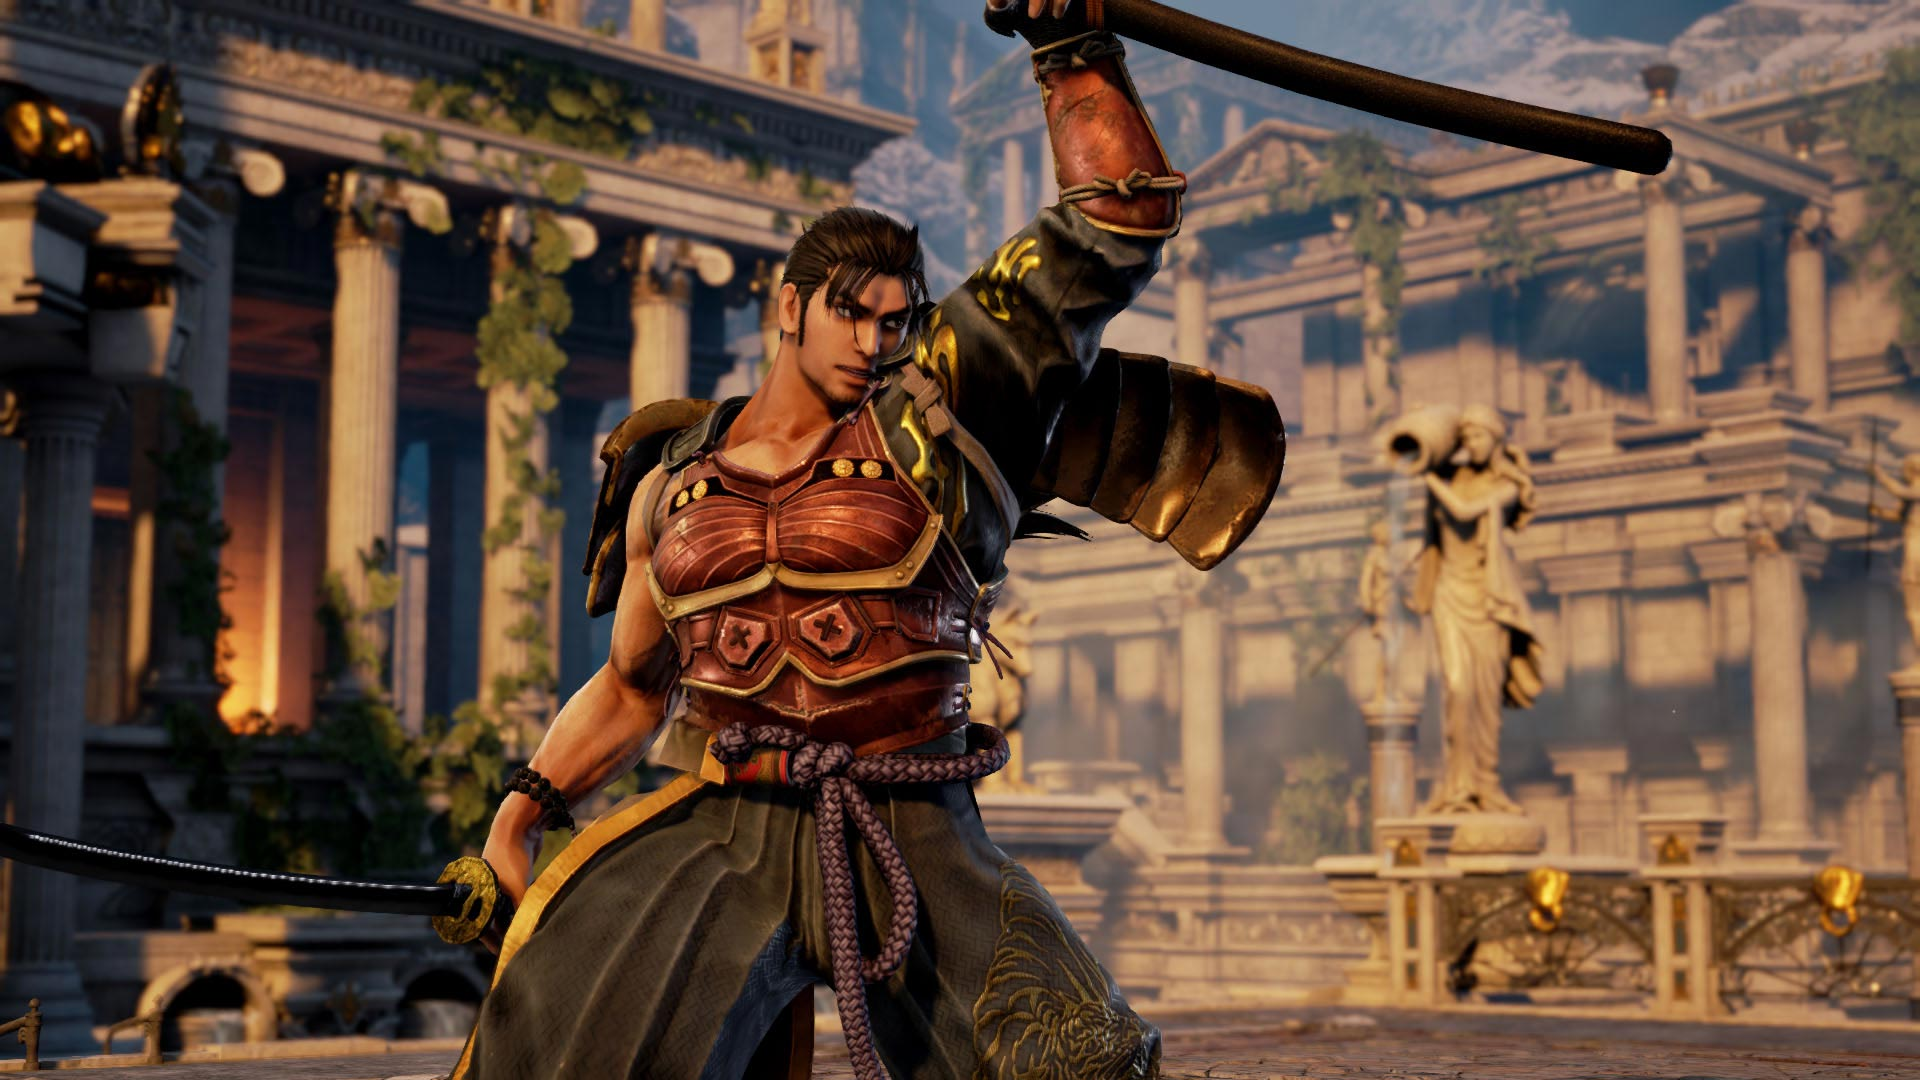 Soul Calibur 6 screeshots 8 out of 16 image gallery